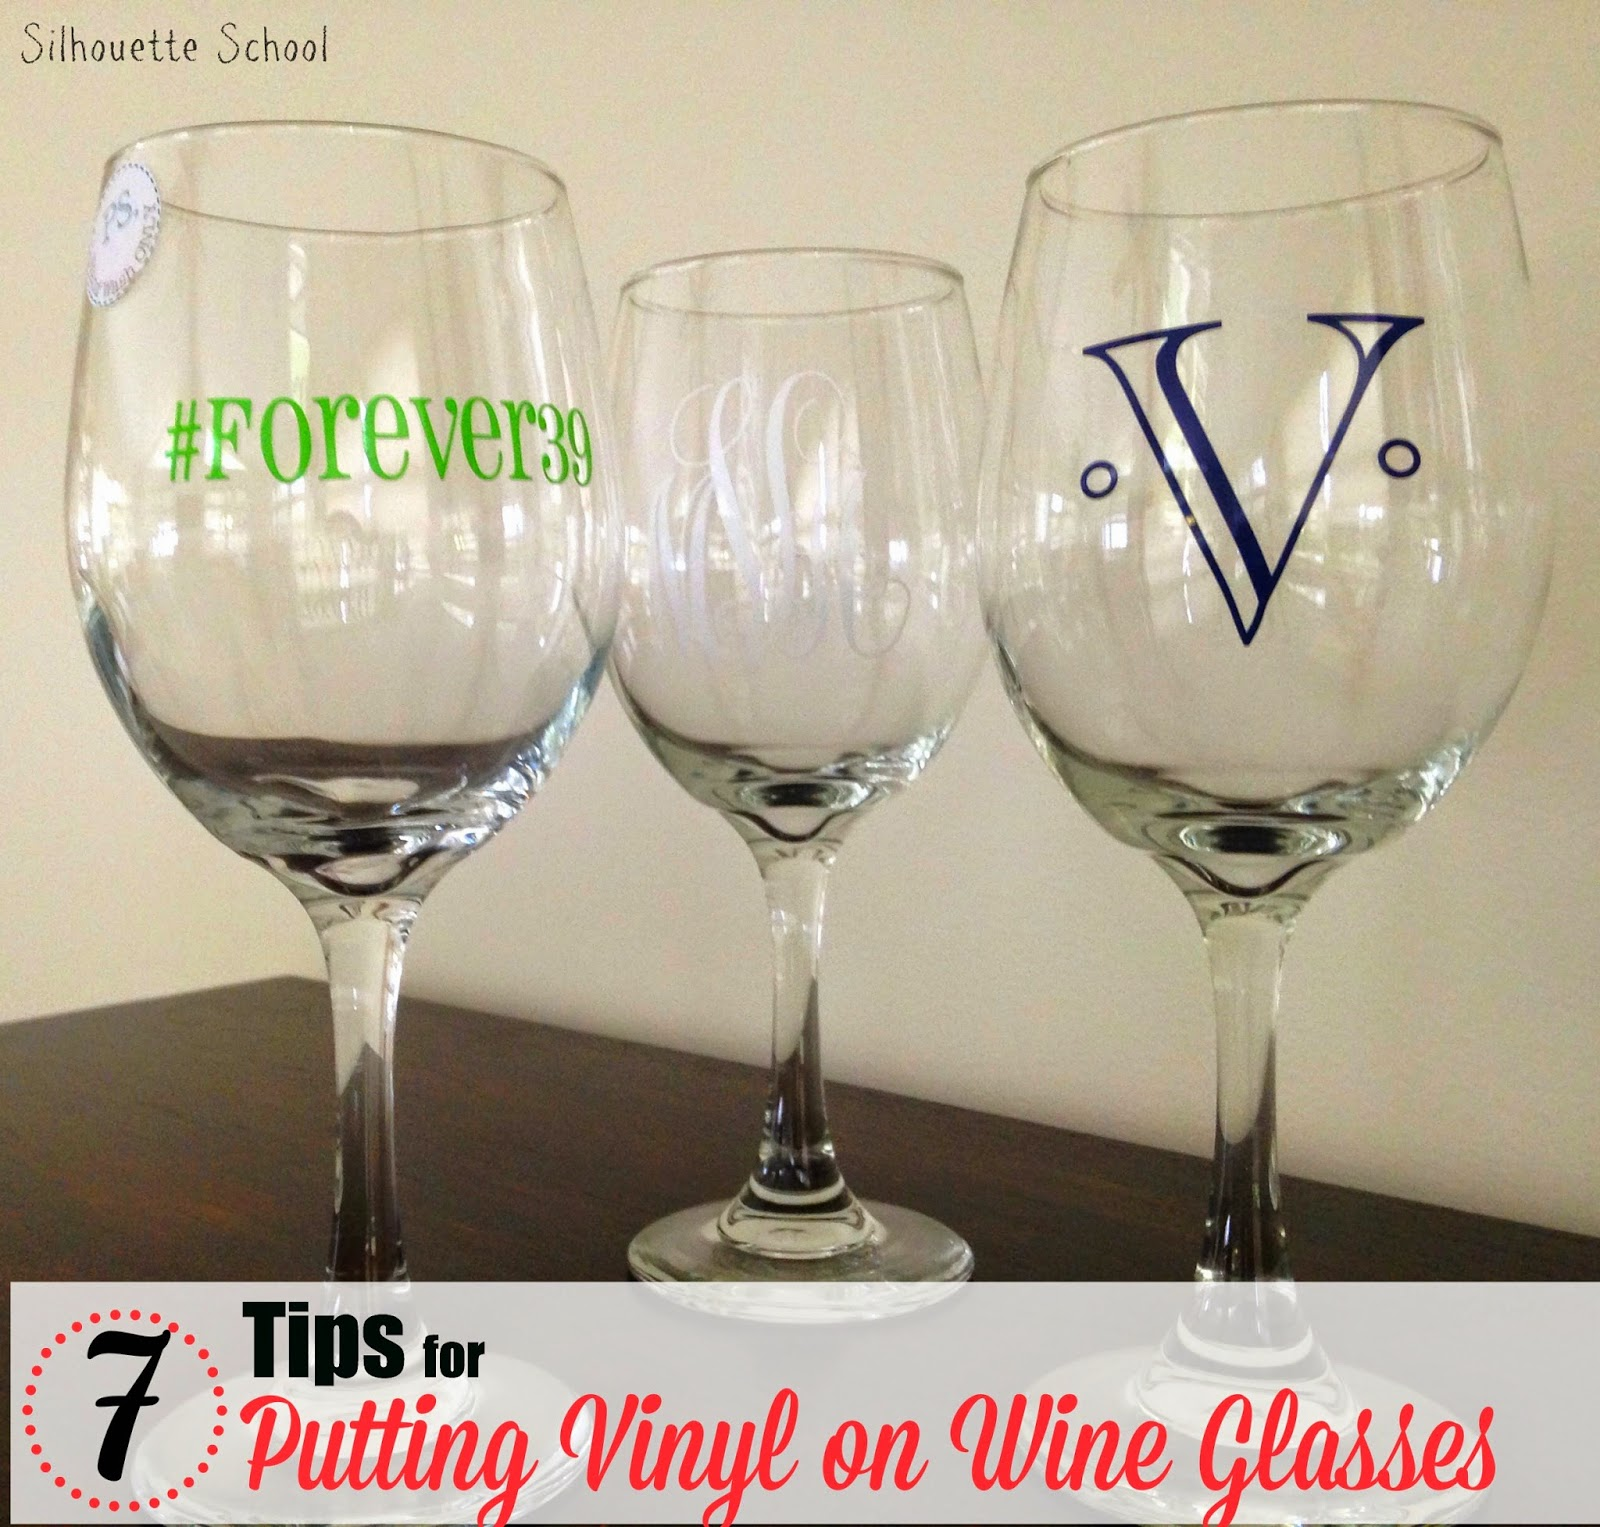 Vinyl, wine glasses, tips